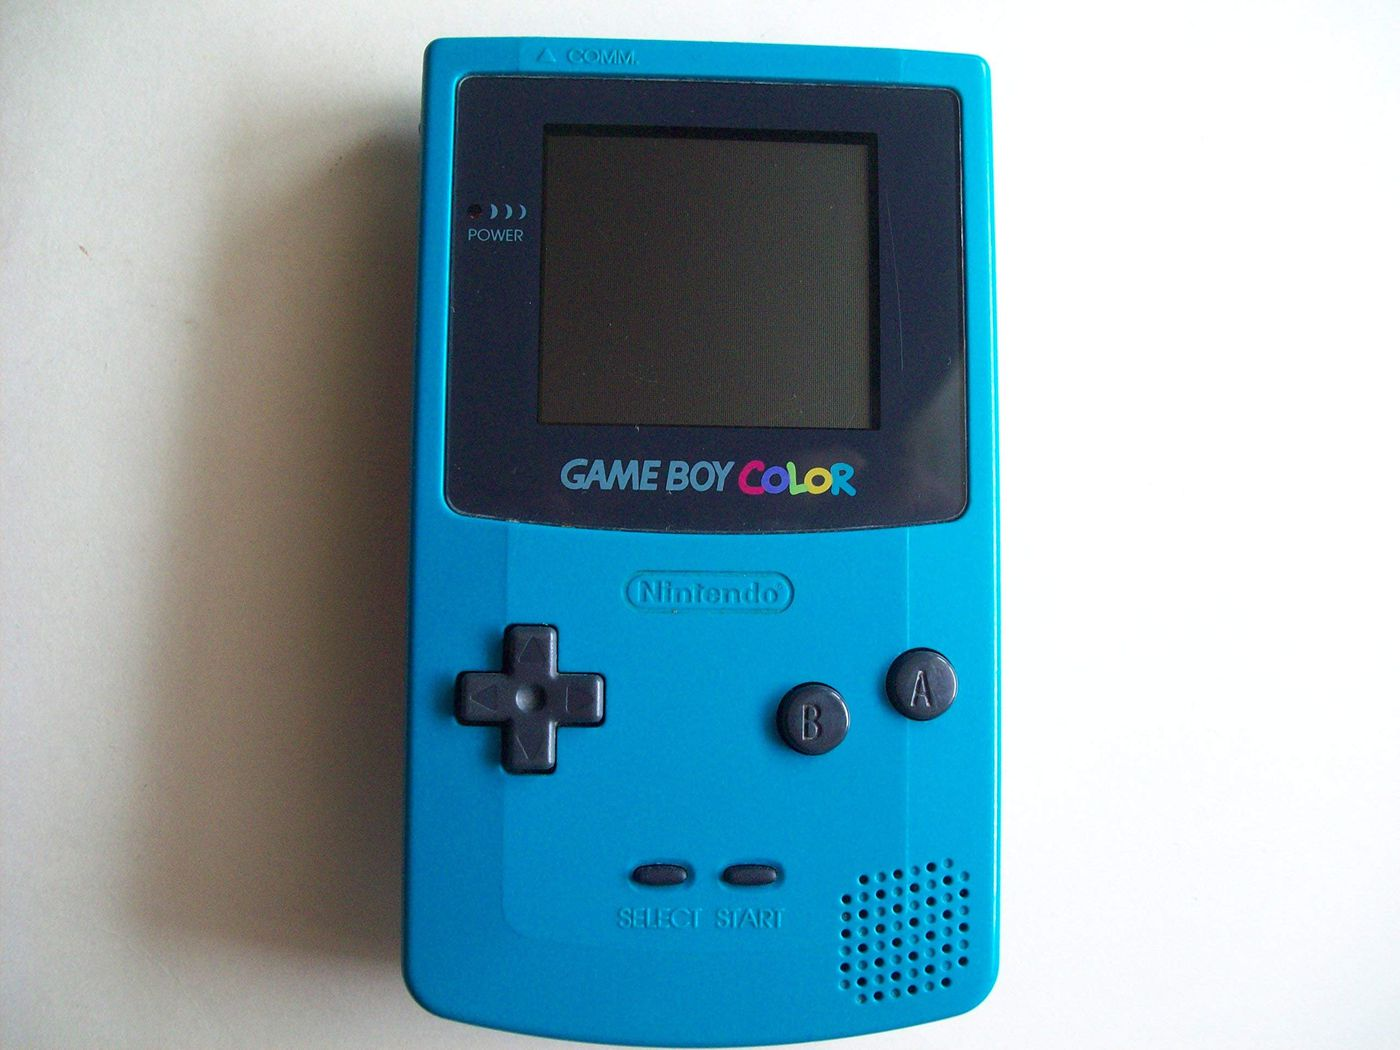 The Best Game Boy Color Colors Ranked Polygon